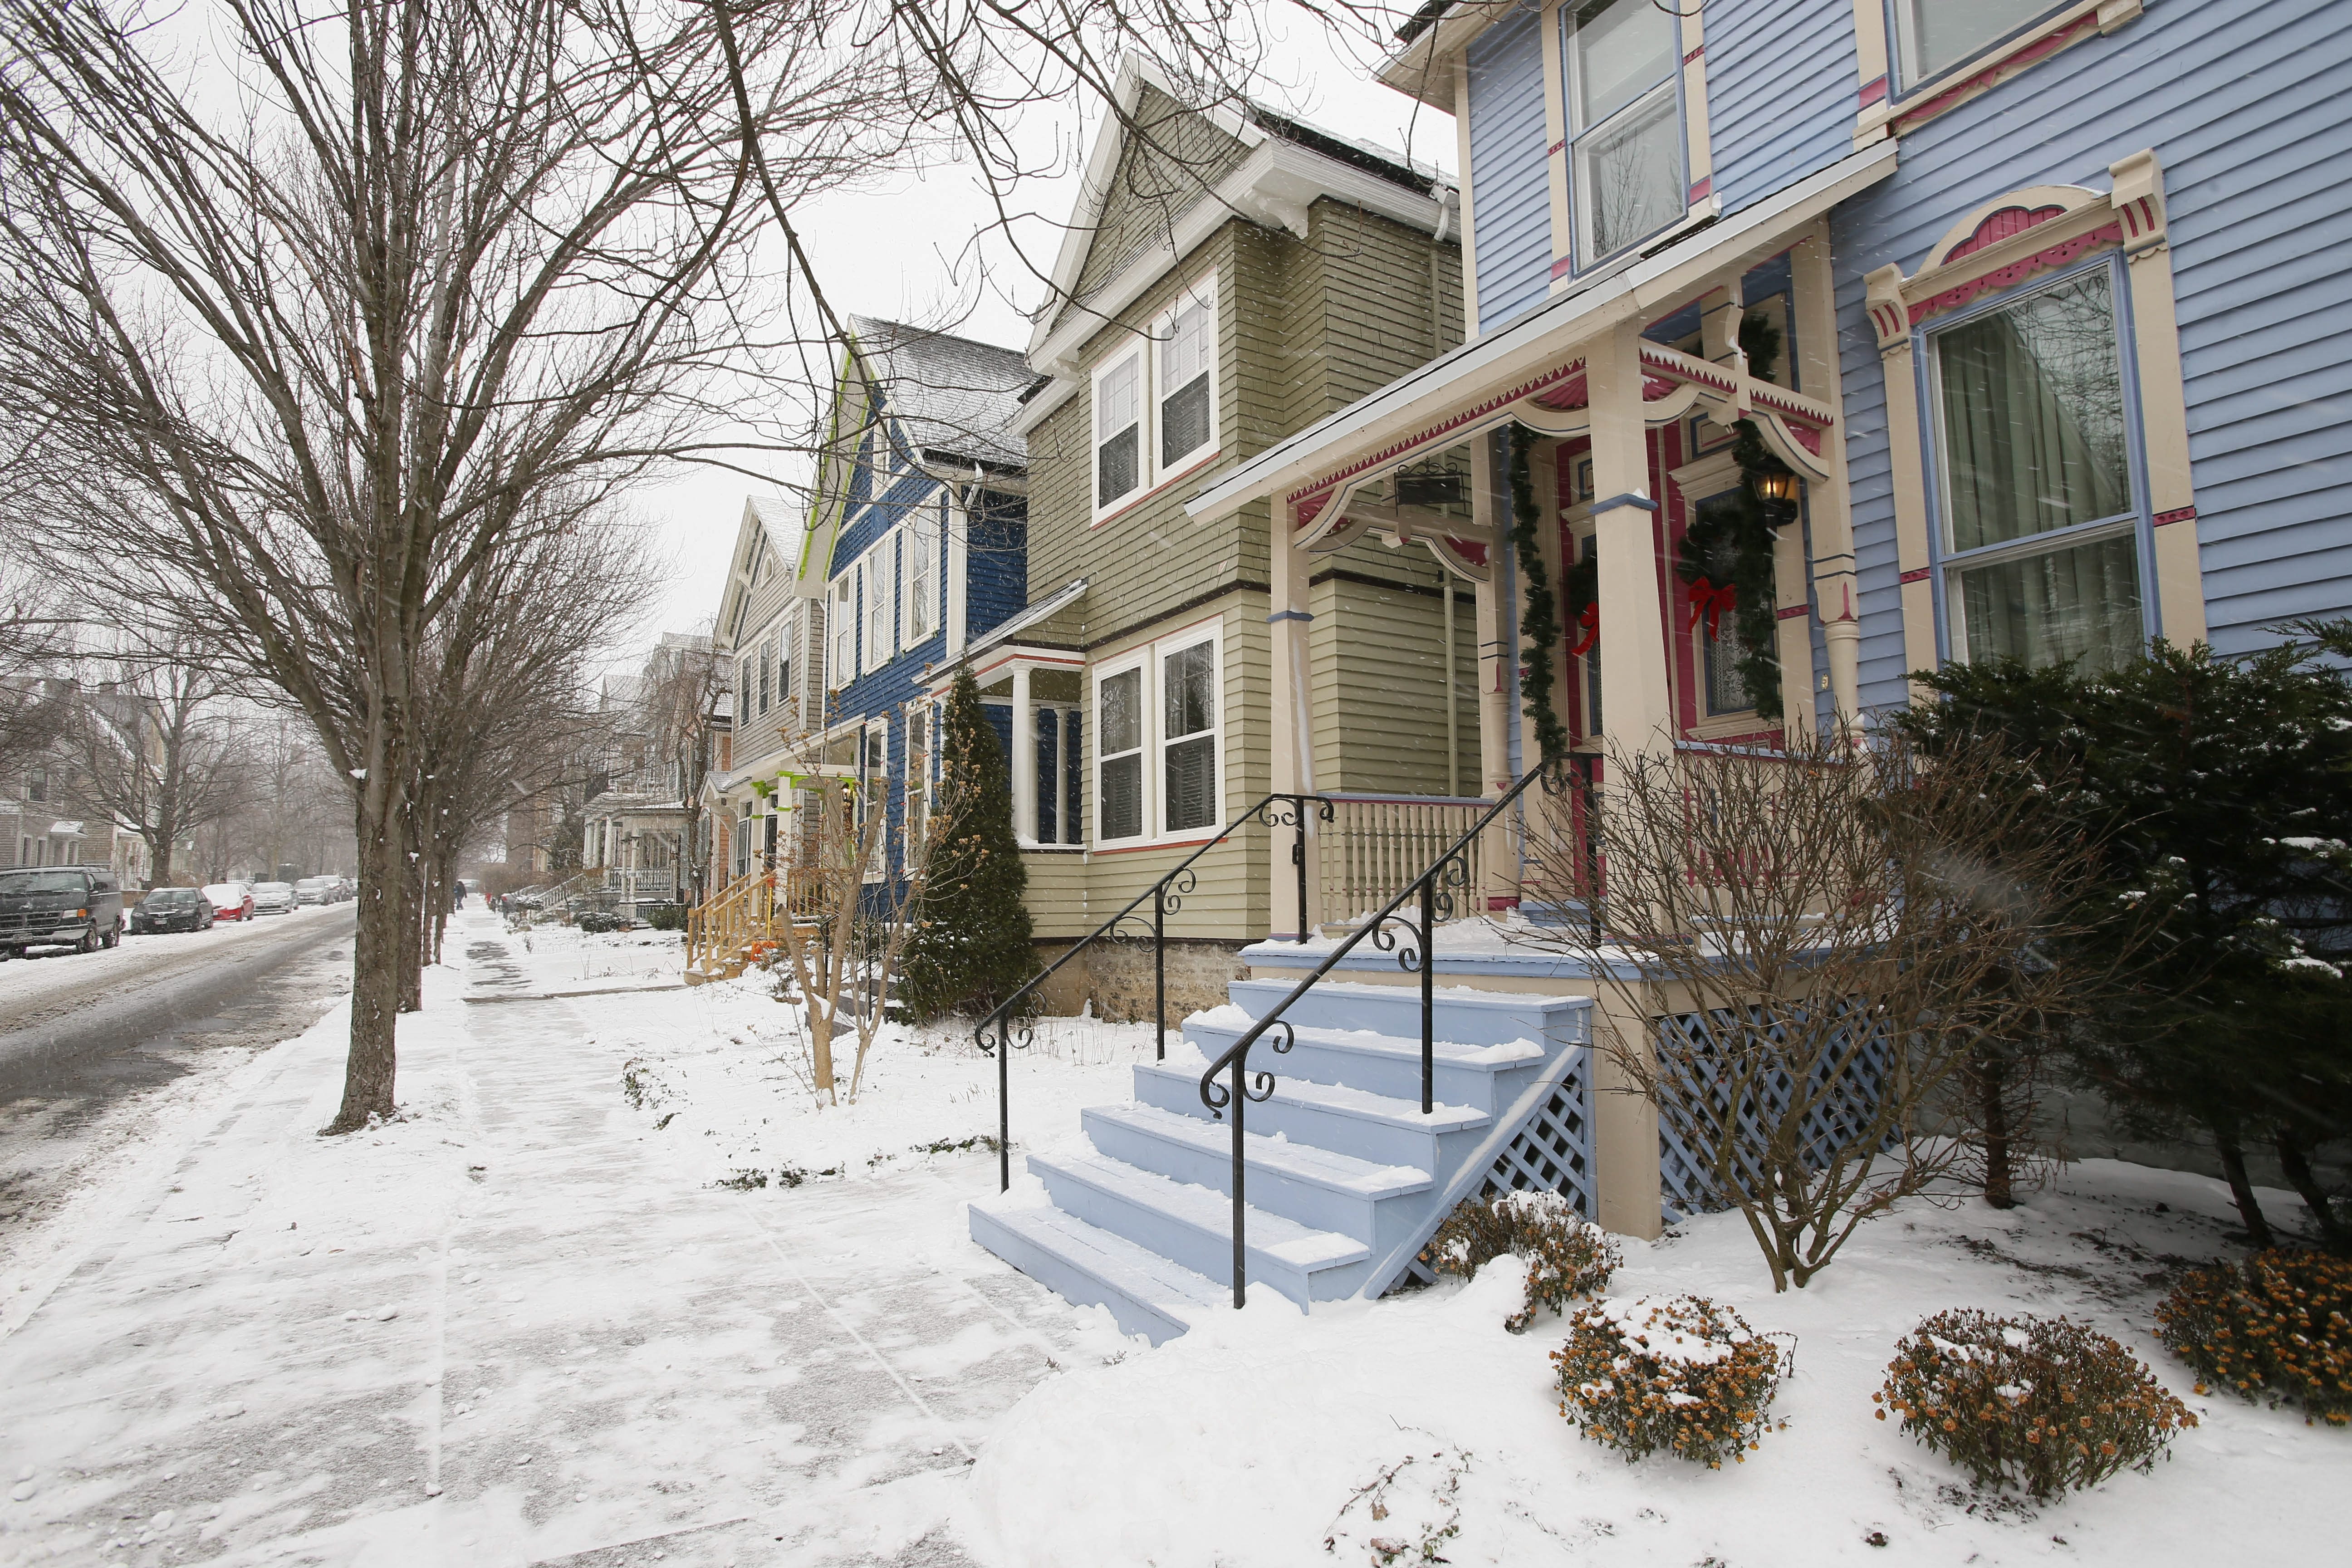 Home prices in the city's Allentown neighborhood have risen 43 percent since 2006, according to research by Buffalo Niagara Association of Realtors.